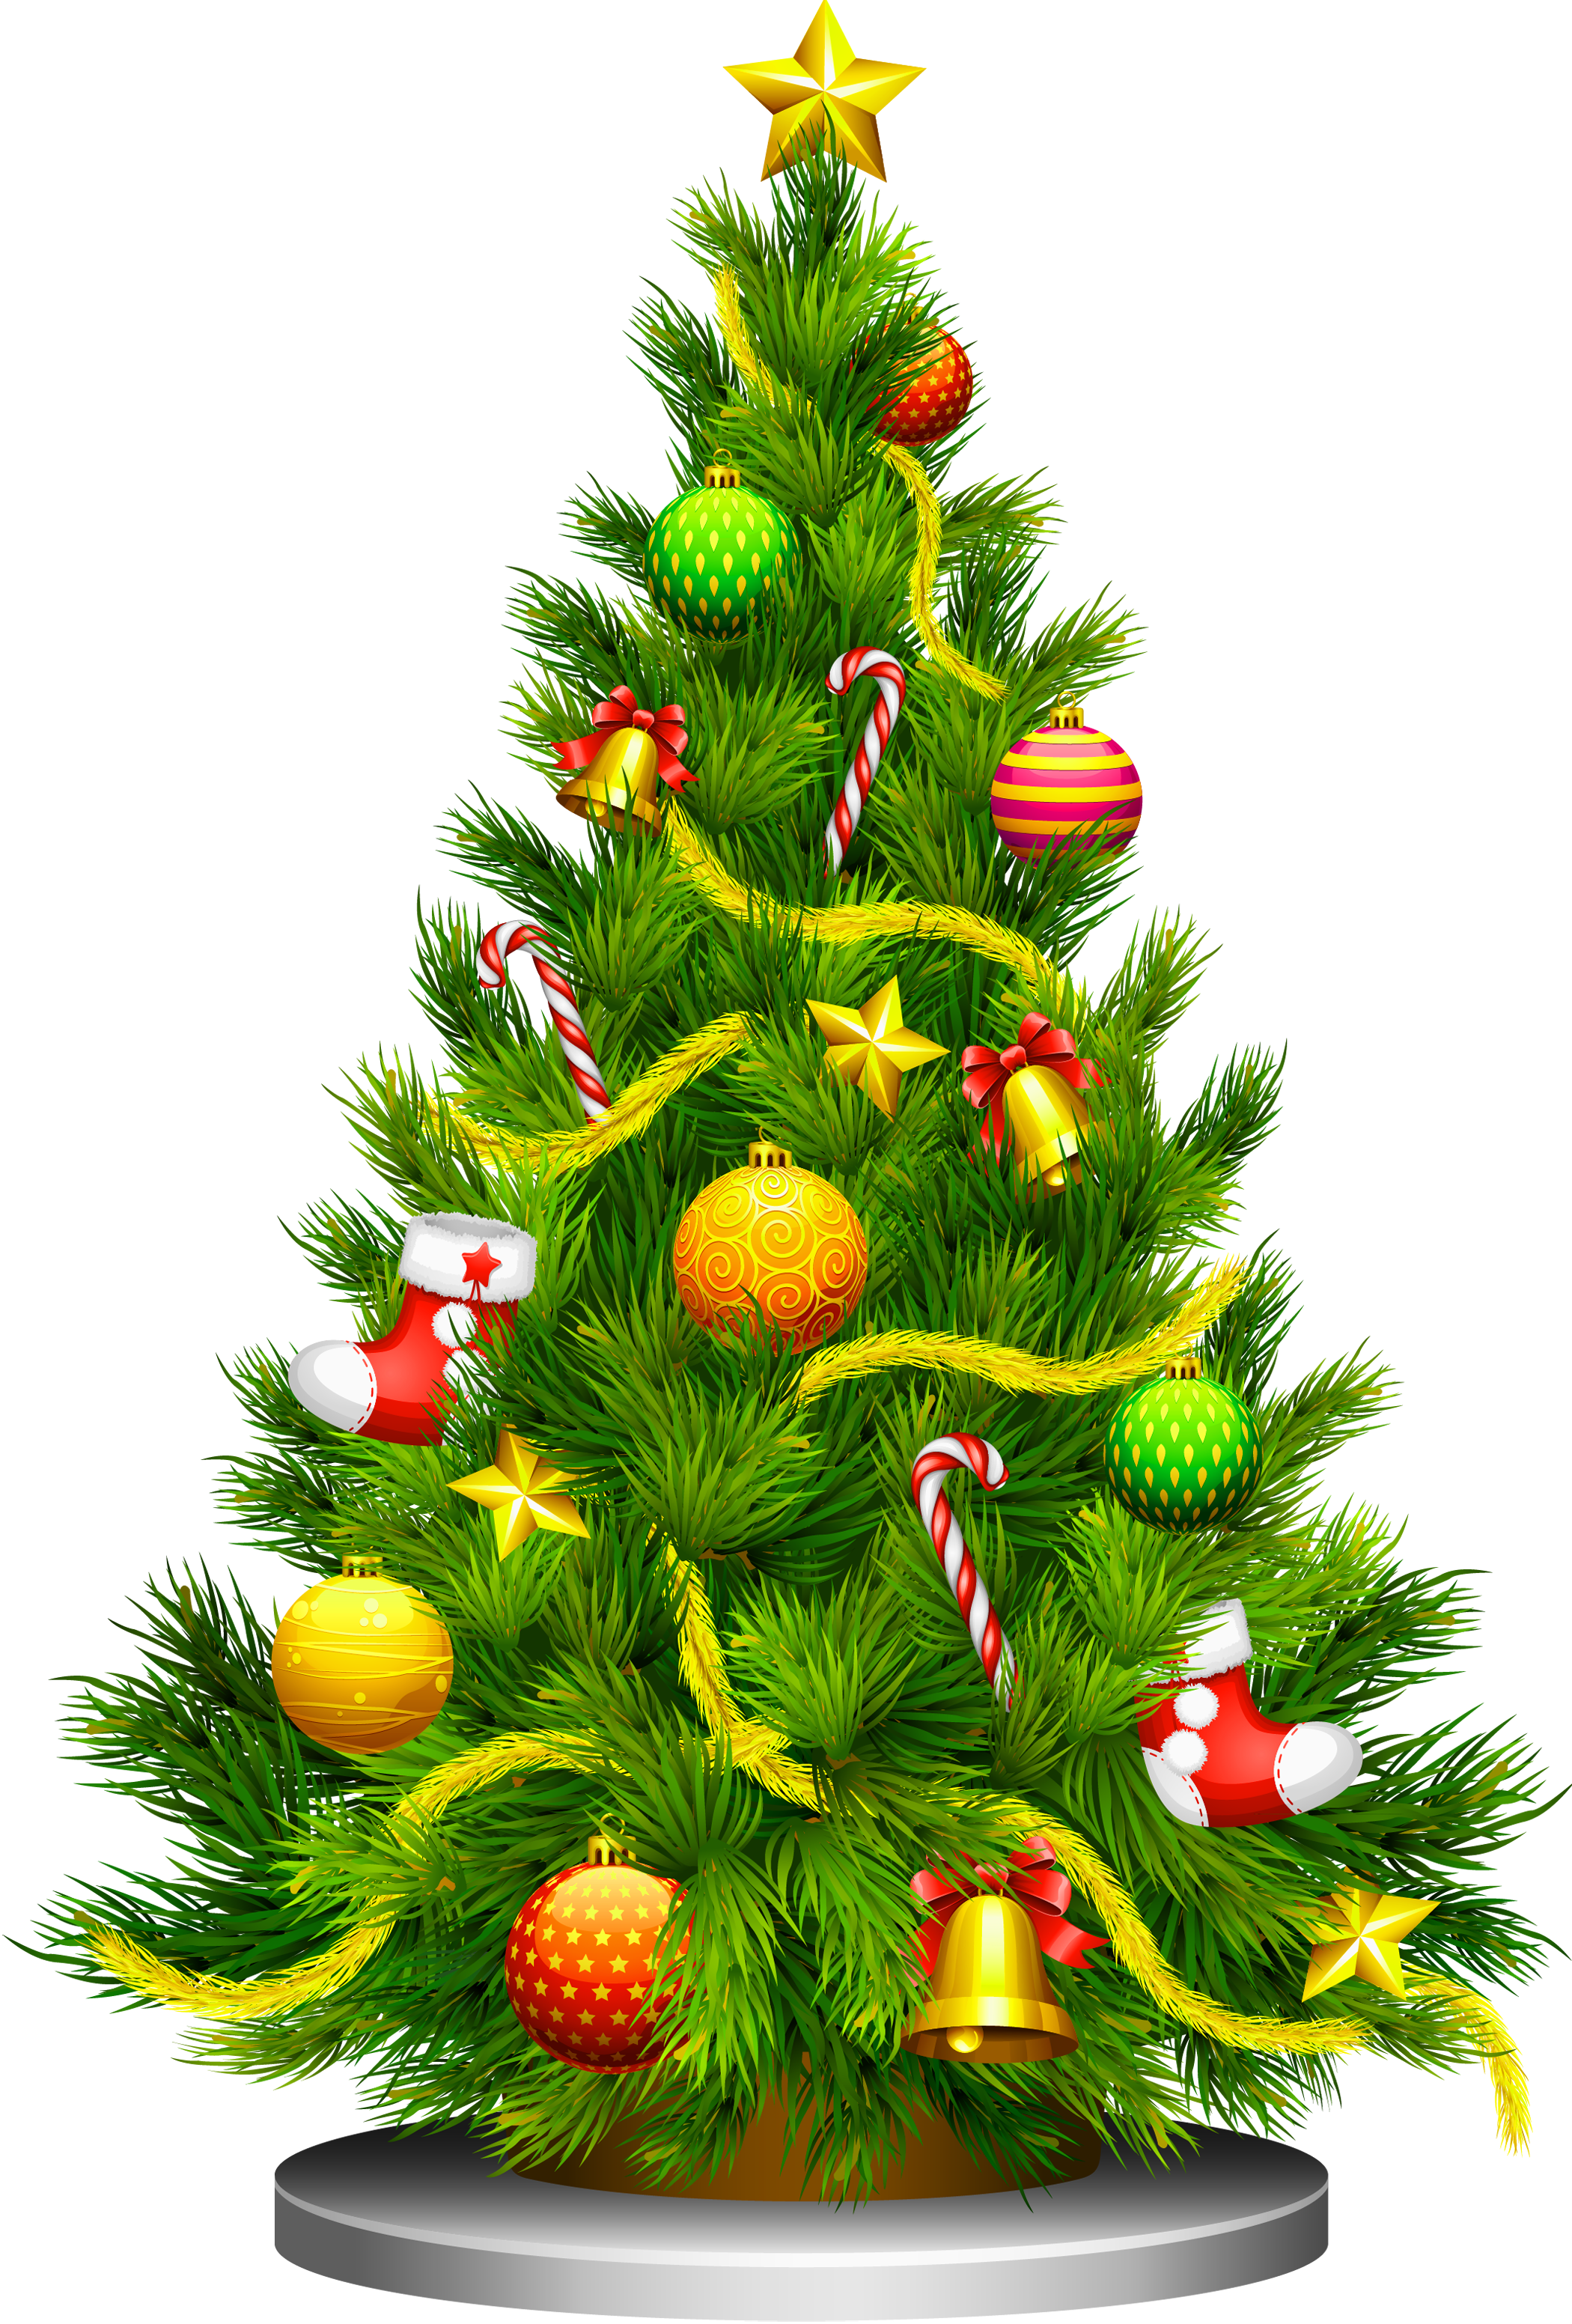 Image Christmas Tree.Christmas Tree Free Large Images Things To Wear